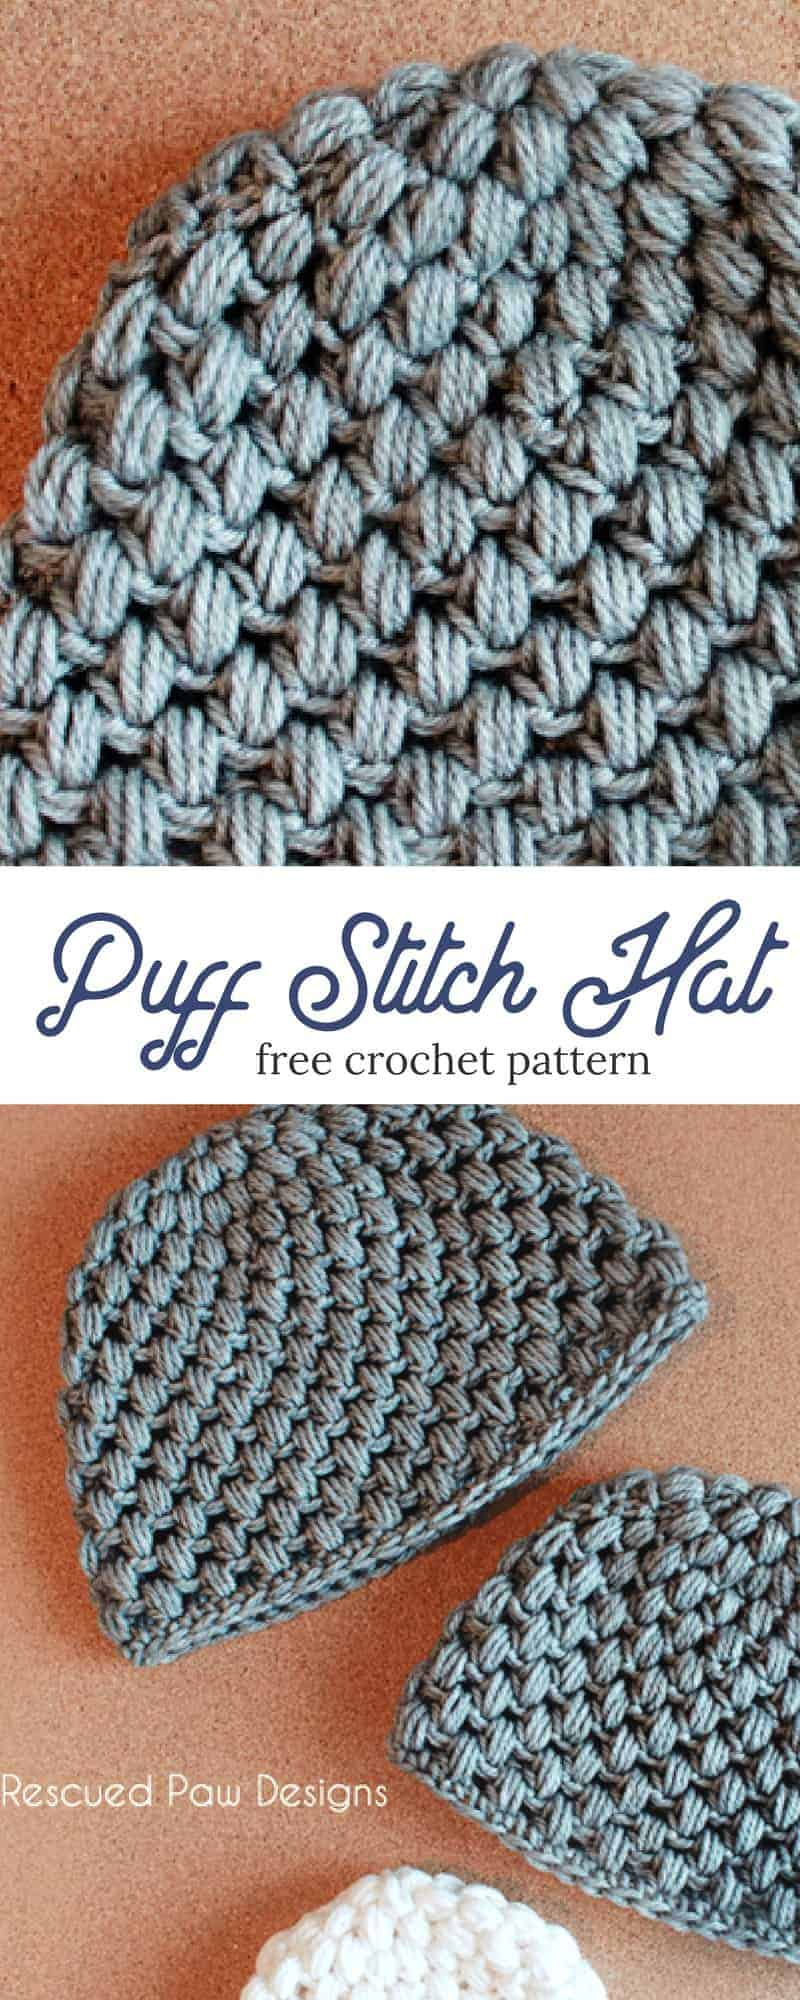 Puff Stitch Crochet Hat Pattern Free Crochet Pattern from Rescued Paw Designs Crochet - Great Crochet Hat for Beginners!